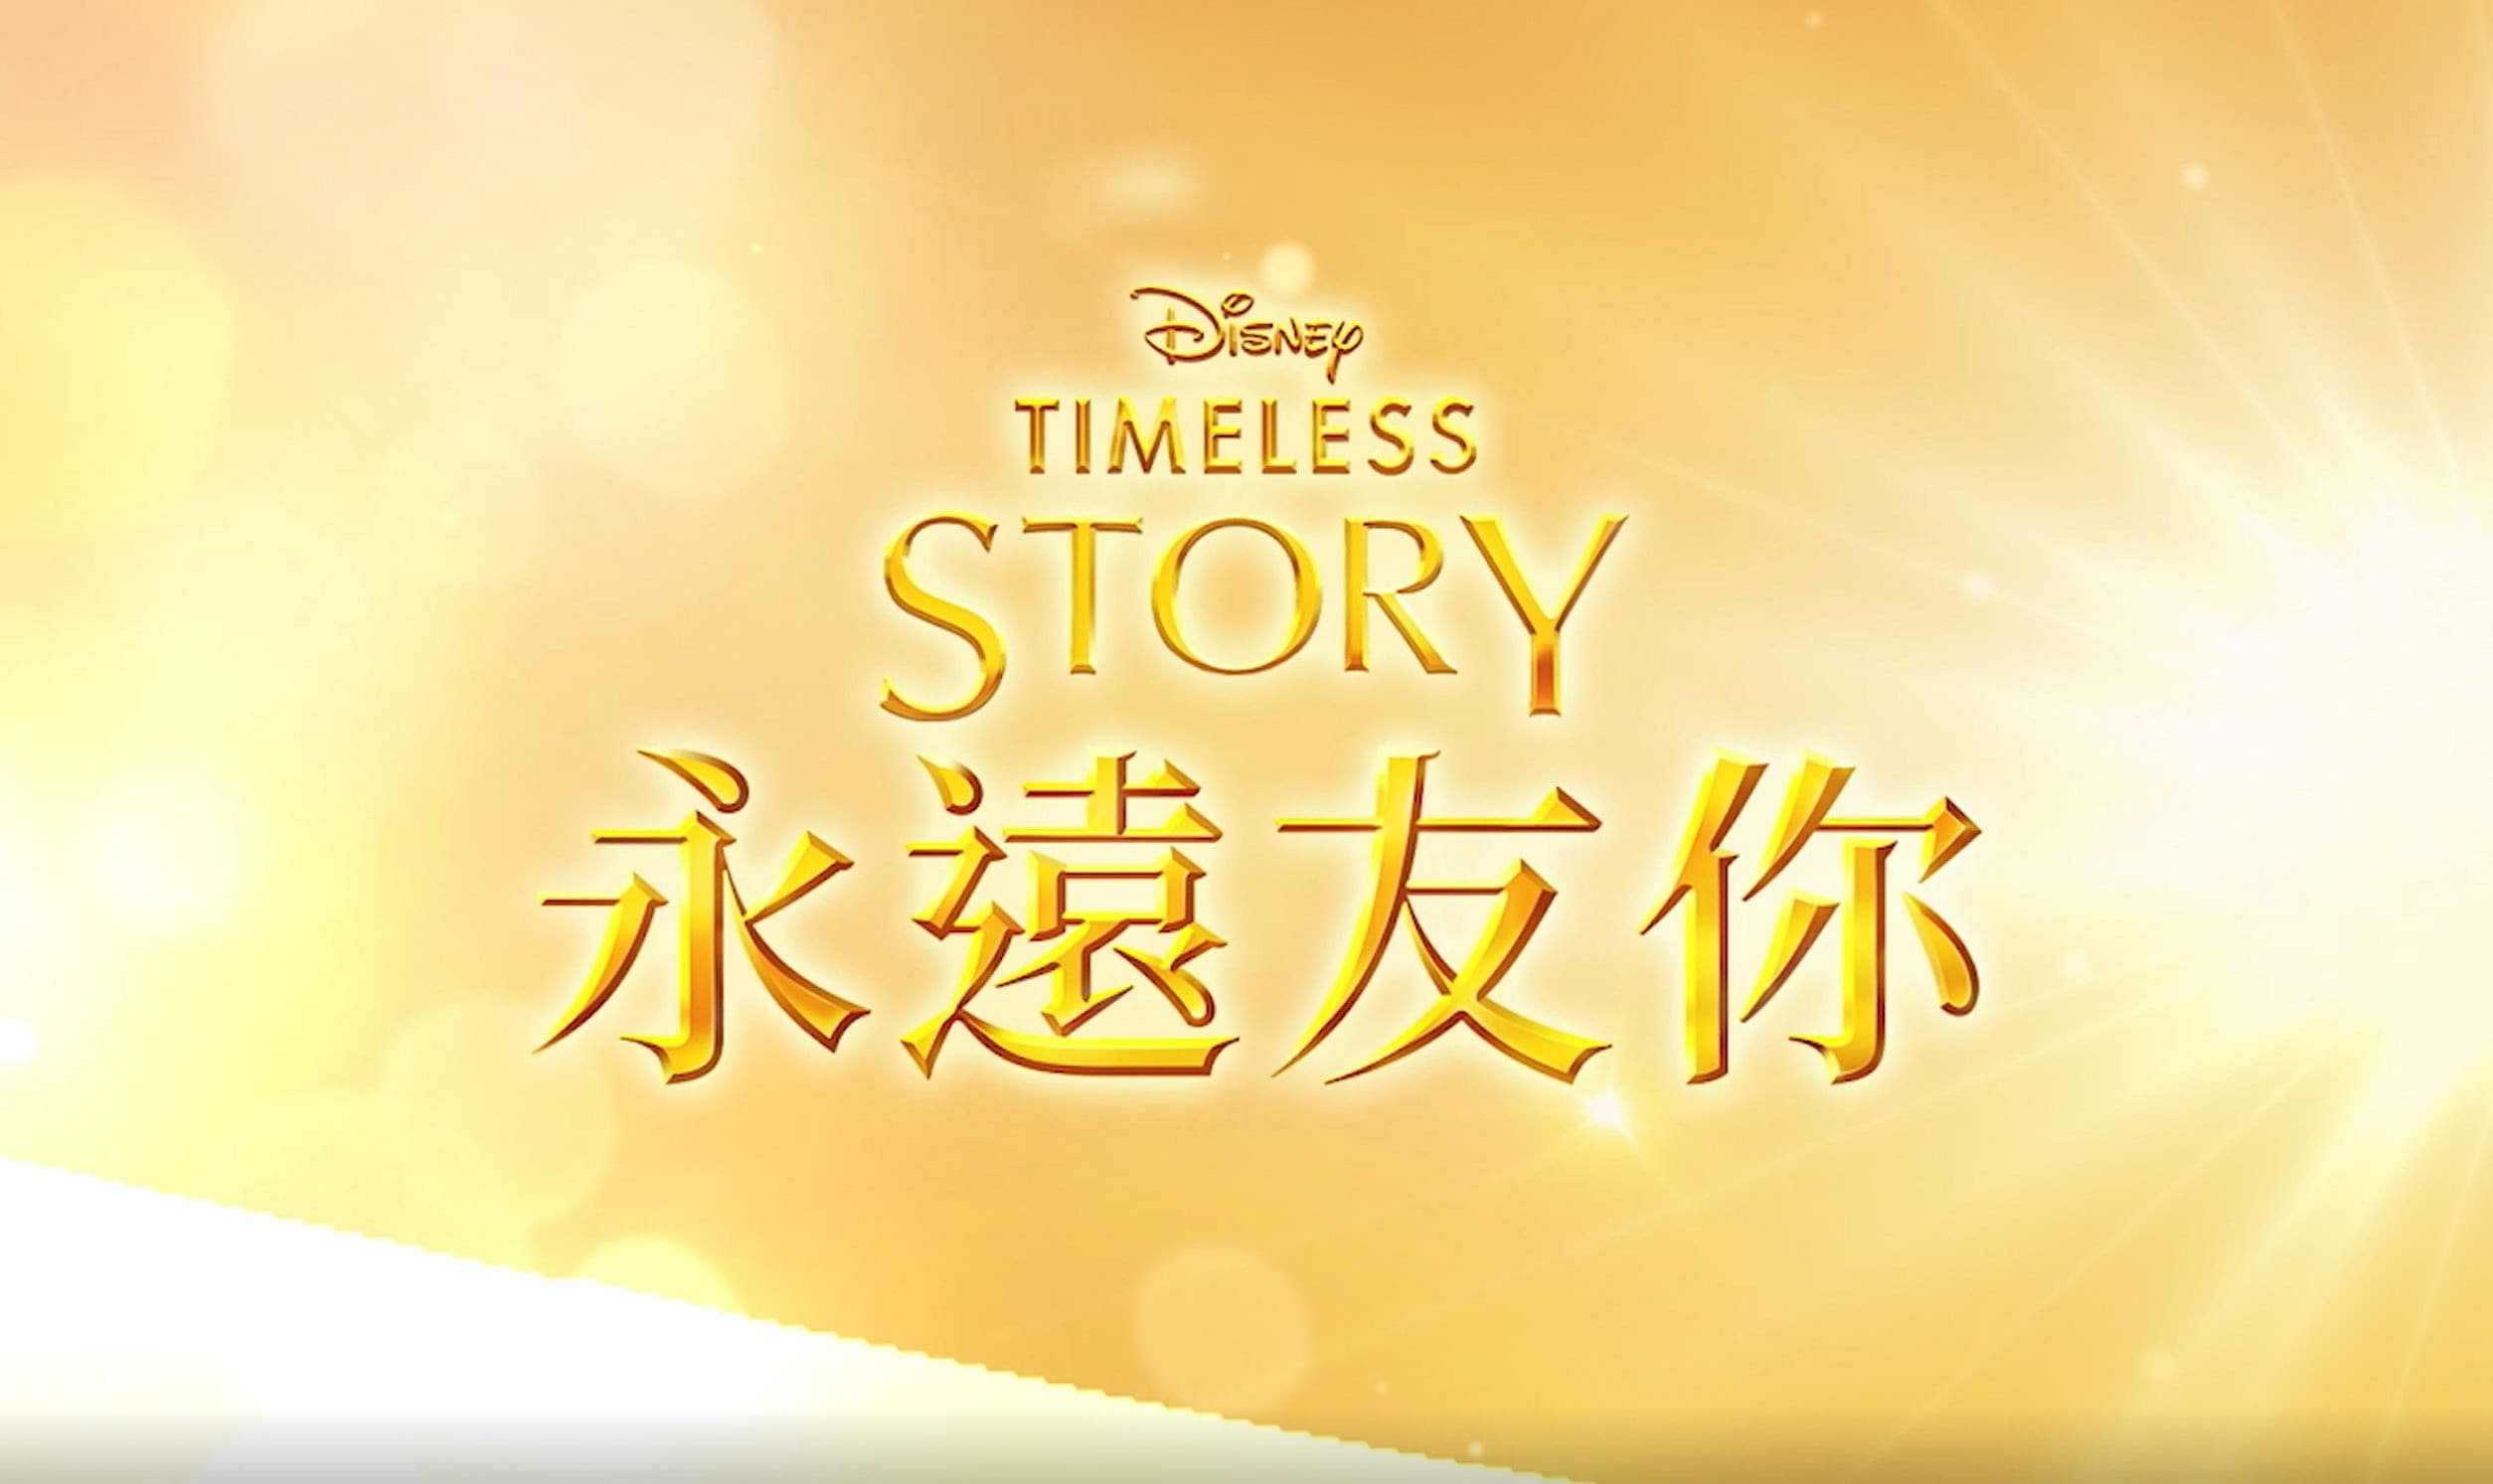 Disney Timeless Story | Video01